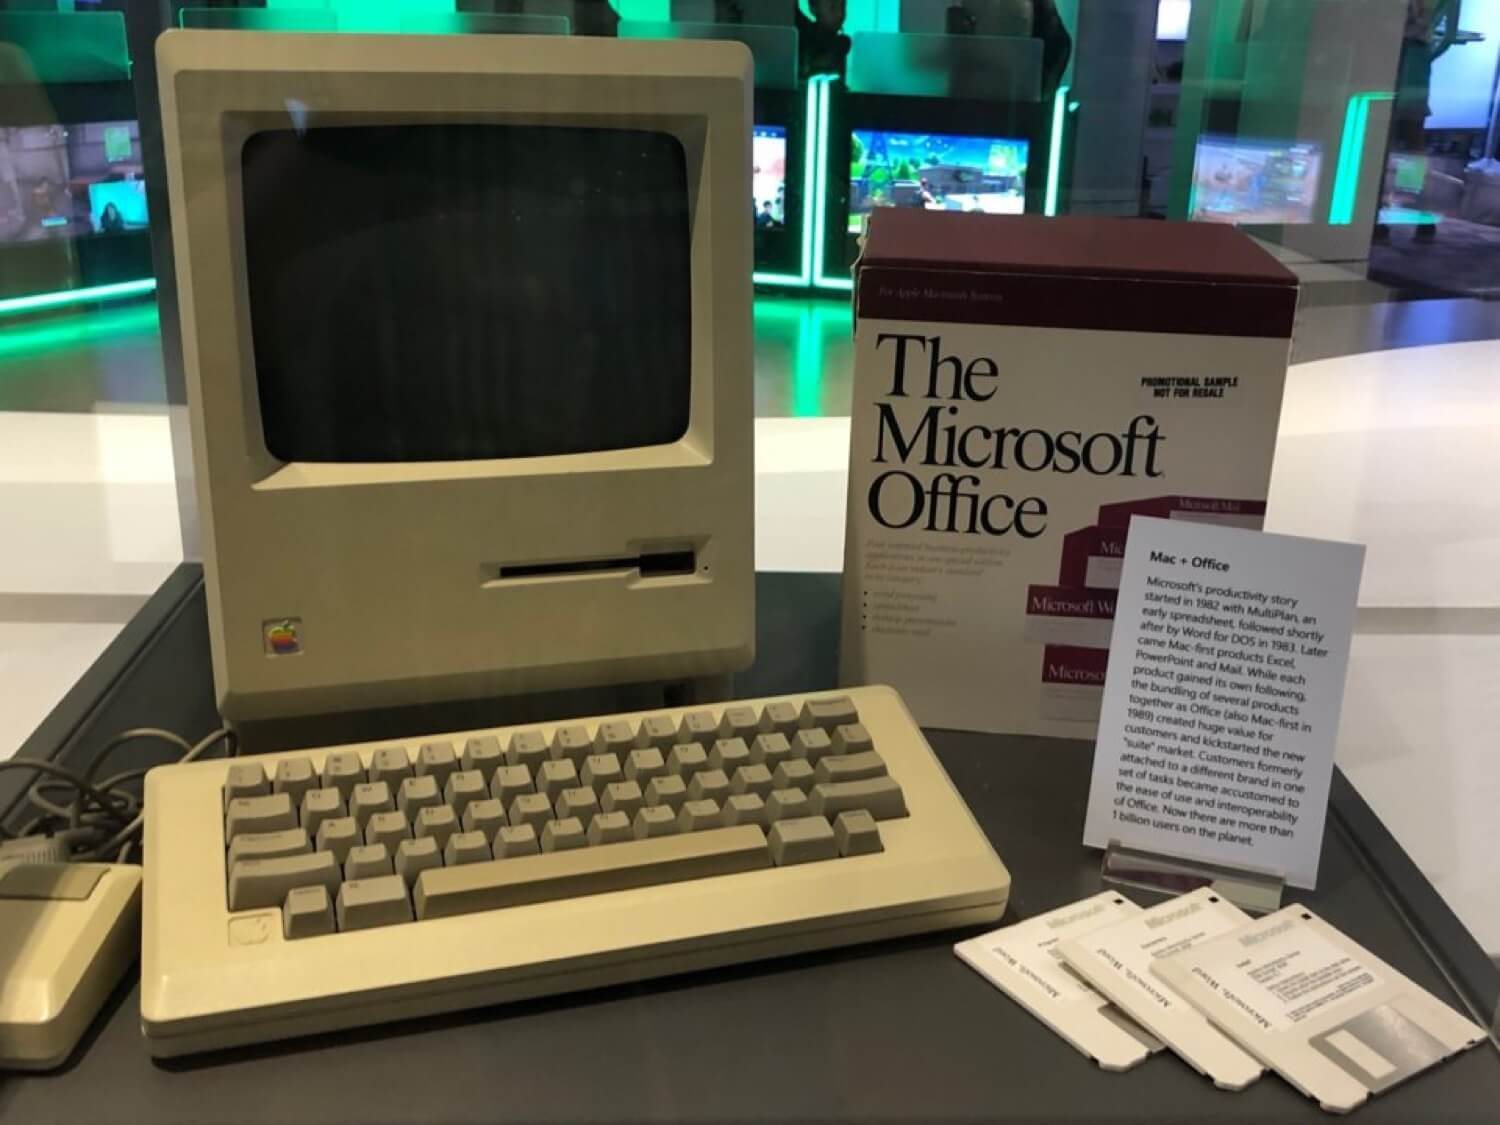 The story of the first Macintosh computer, which is the headquarters of Microsoft